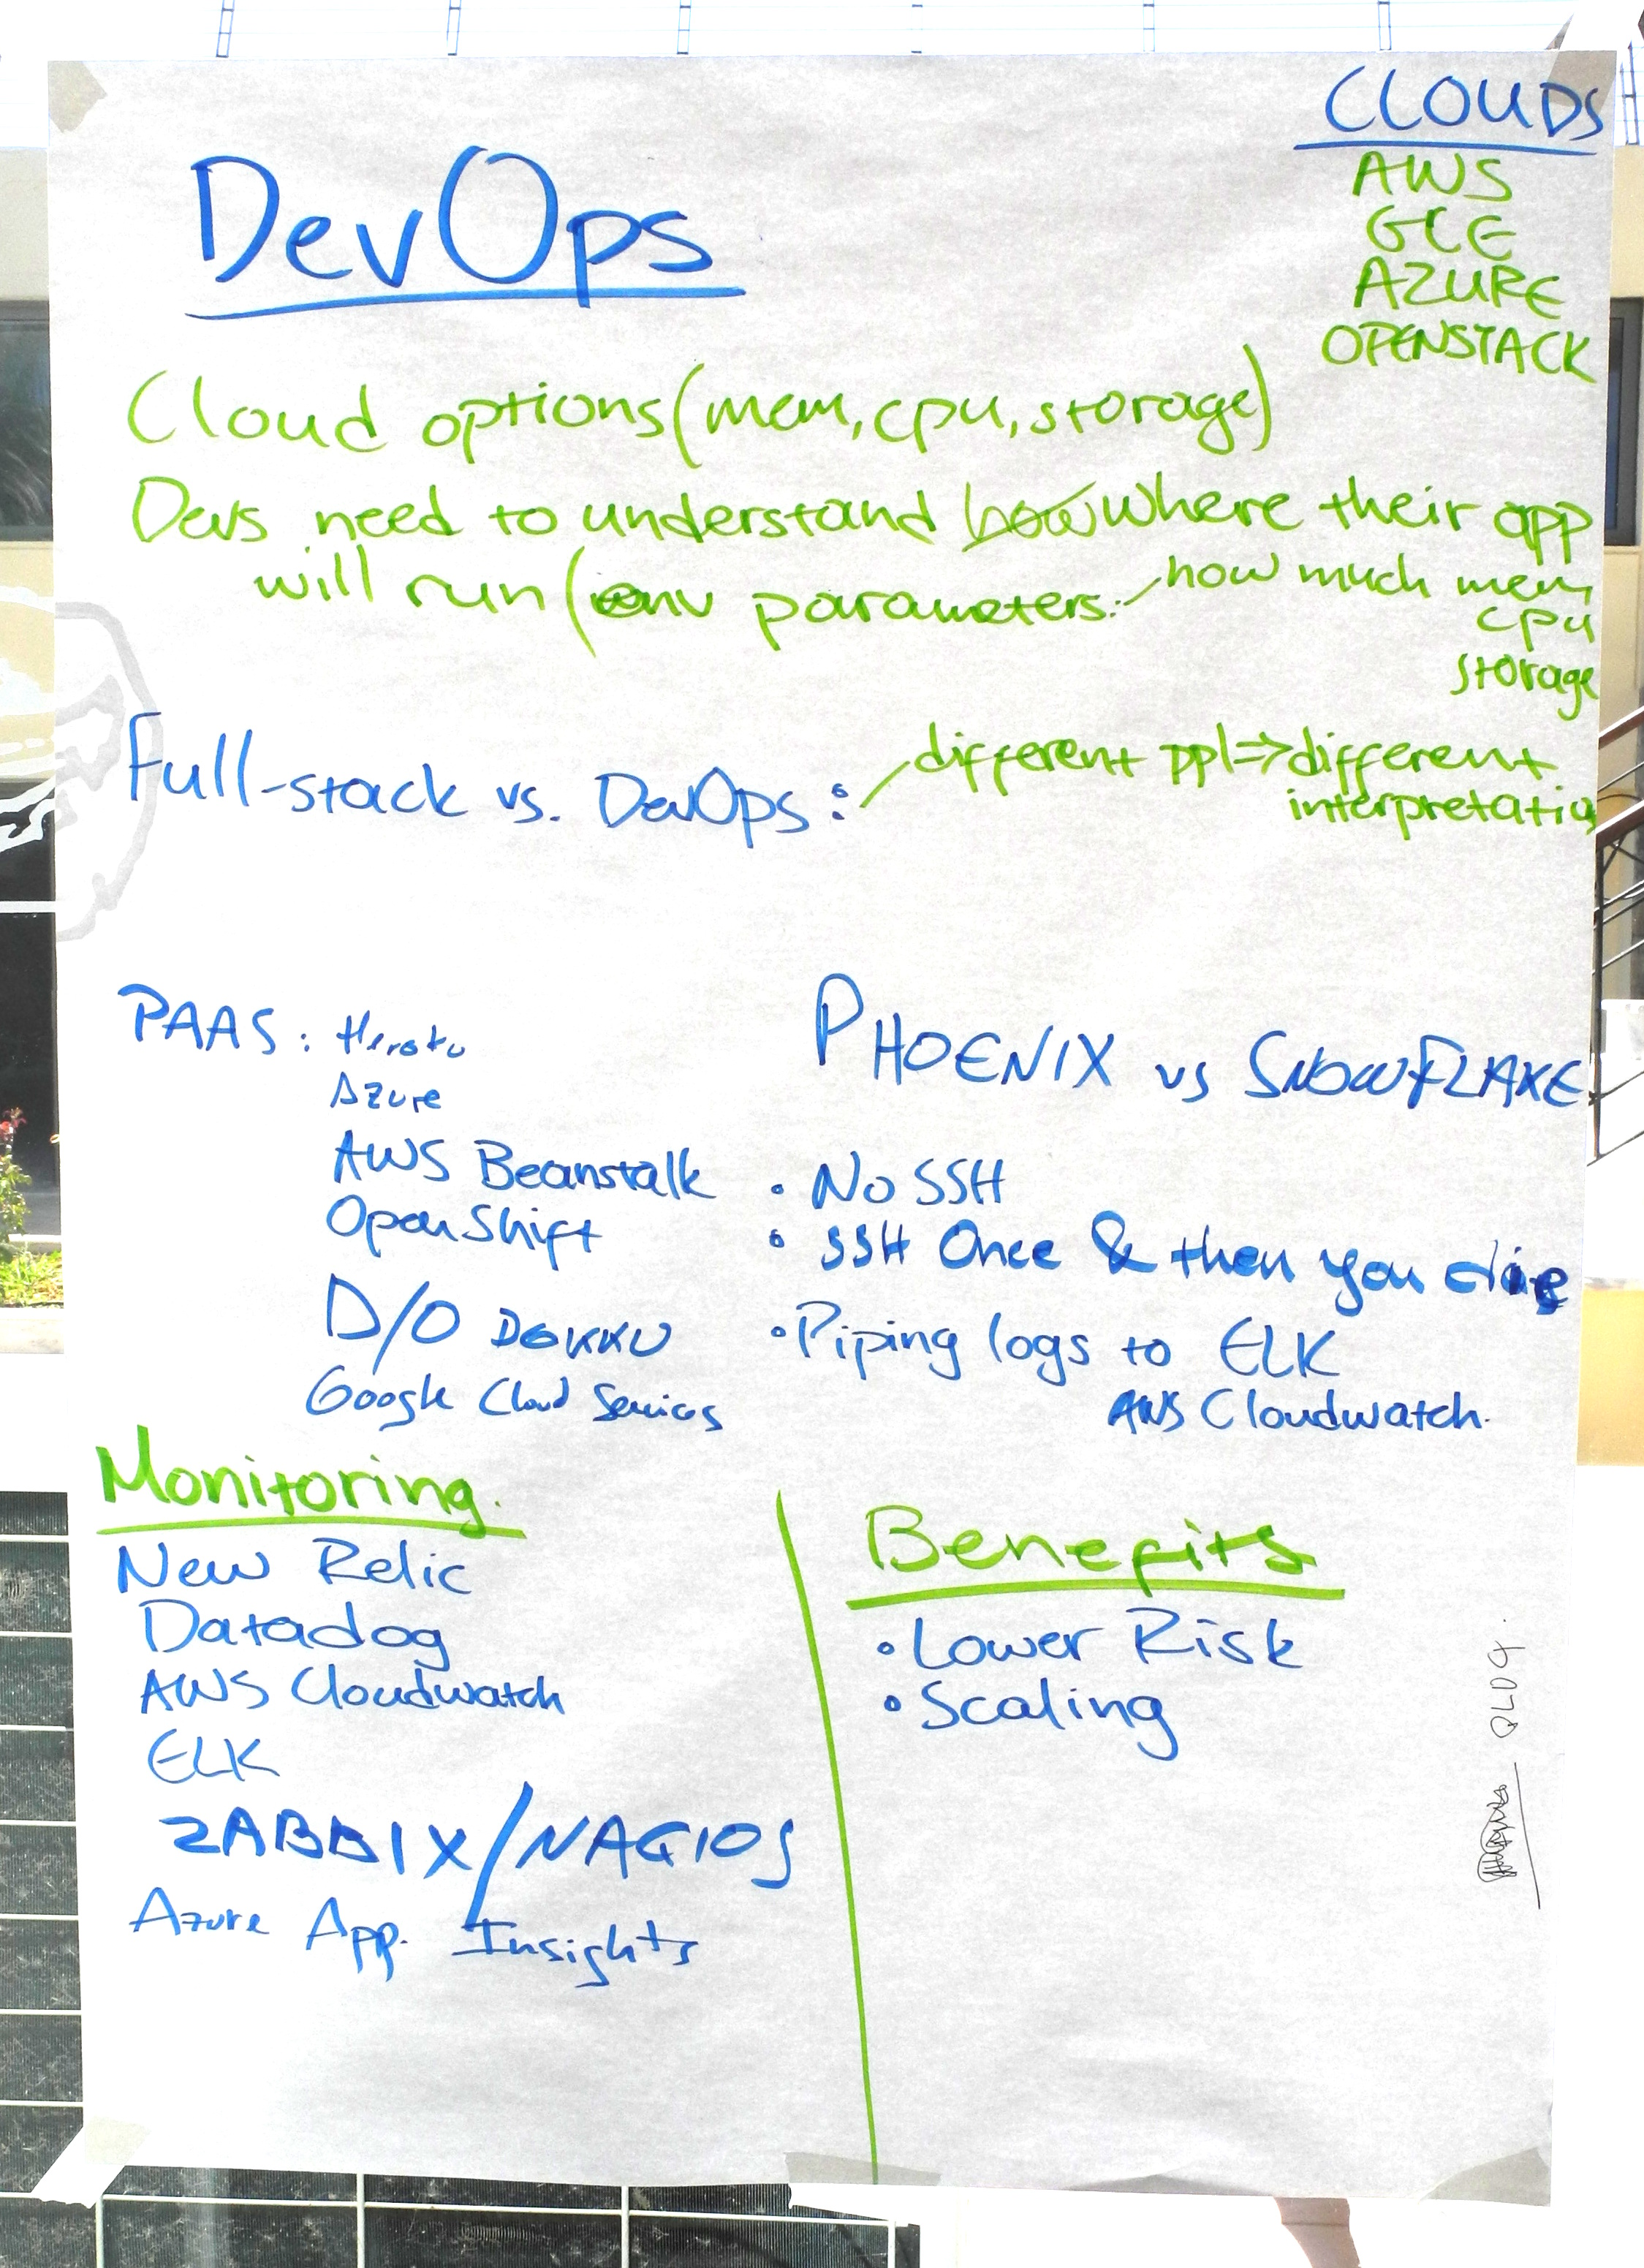 Harvest - DevOps & PaaS